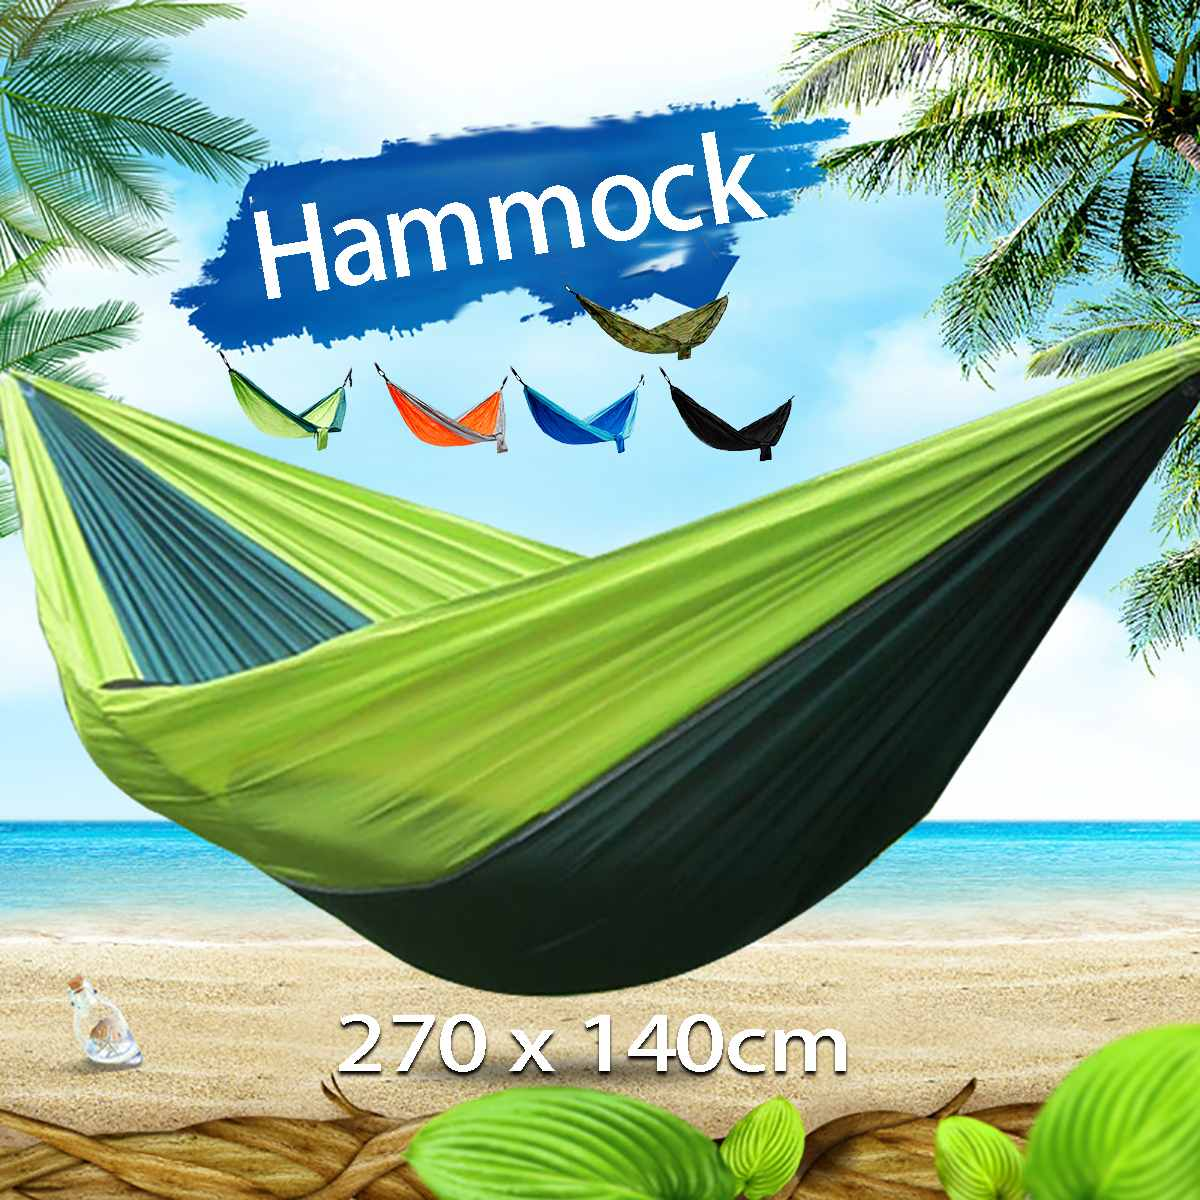 270x140cm Portable Parachute 210T Nylon Hammock Double Swing Hanging Bed Outdoor Camping Barbecue Picnic Clean And Safe270x140cm Portable Parachute 210T Nylon Hammock Double Swing Hanging Bed Outdoor Camping Barbecue Picnic Clean And Safe